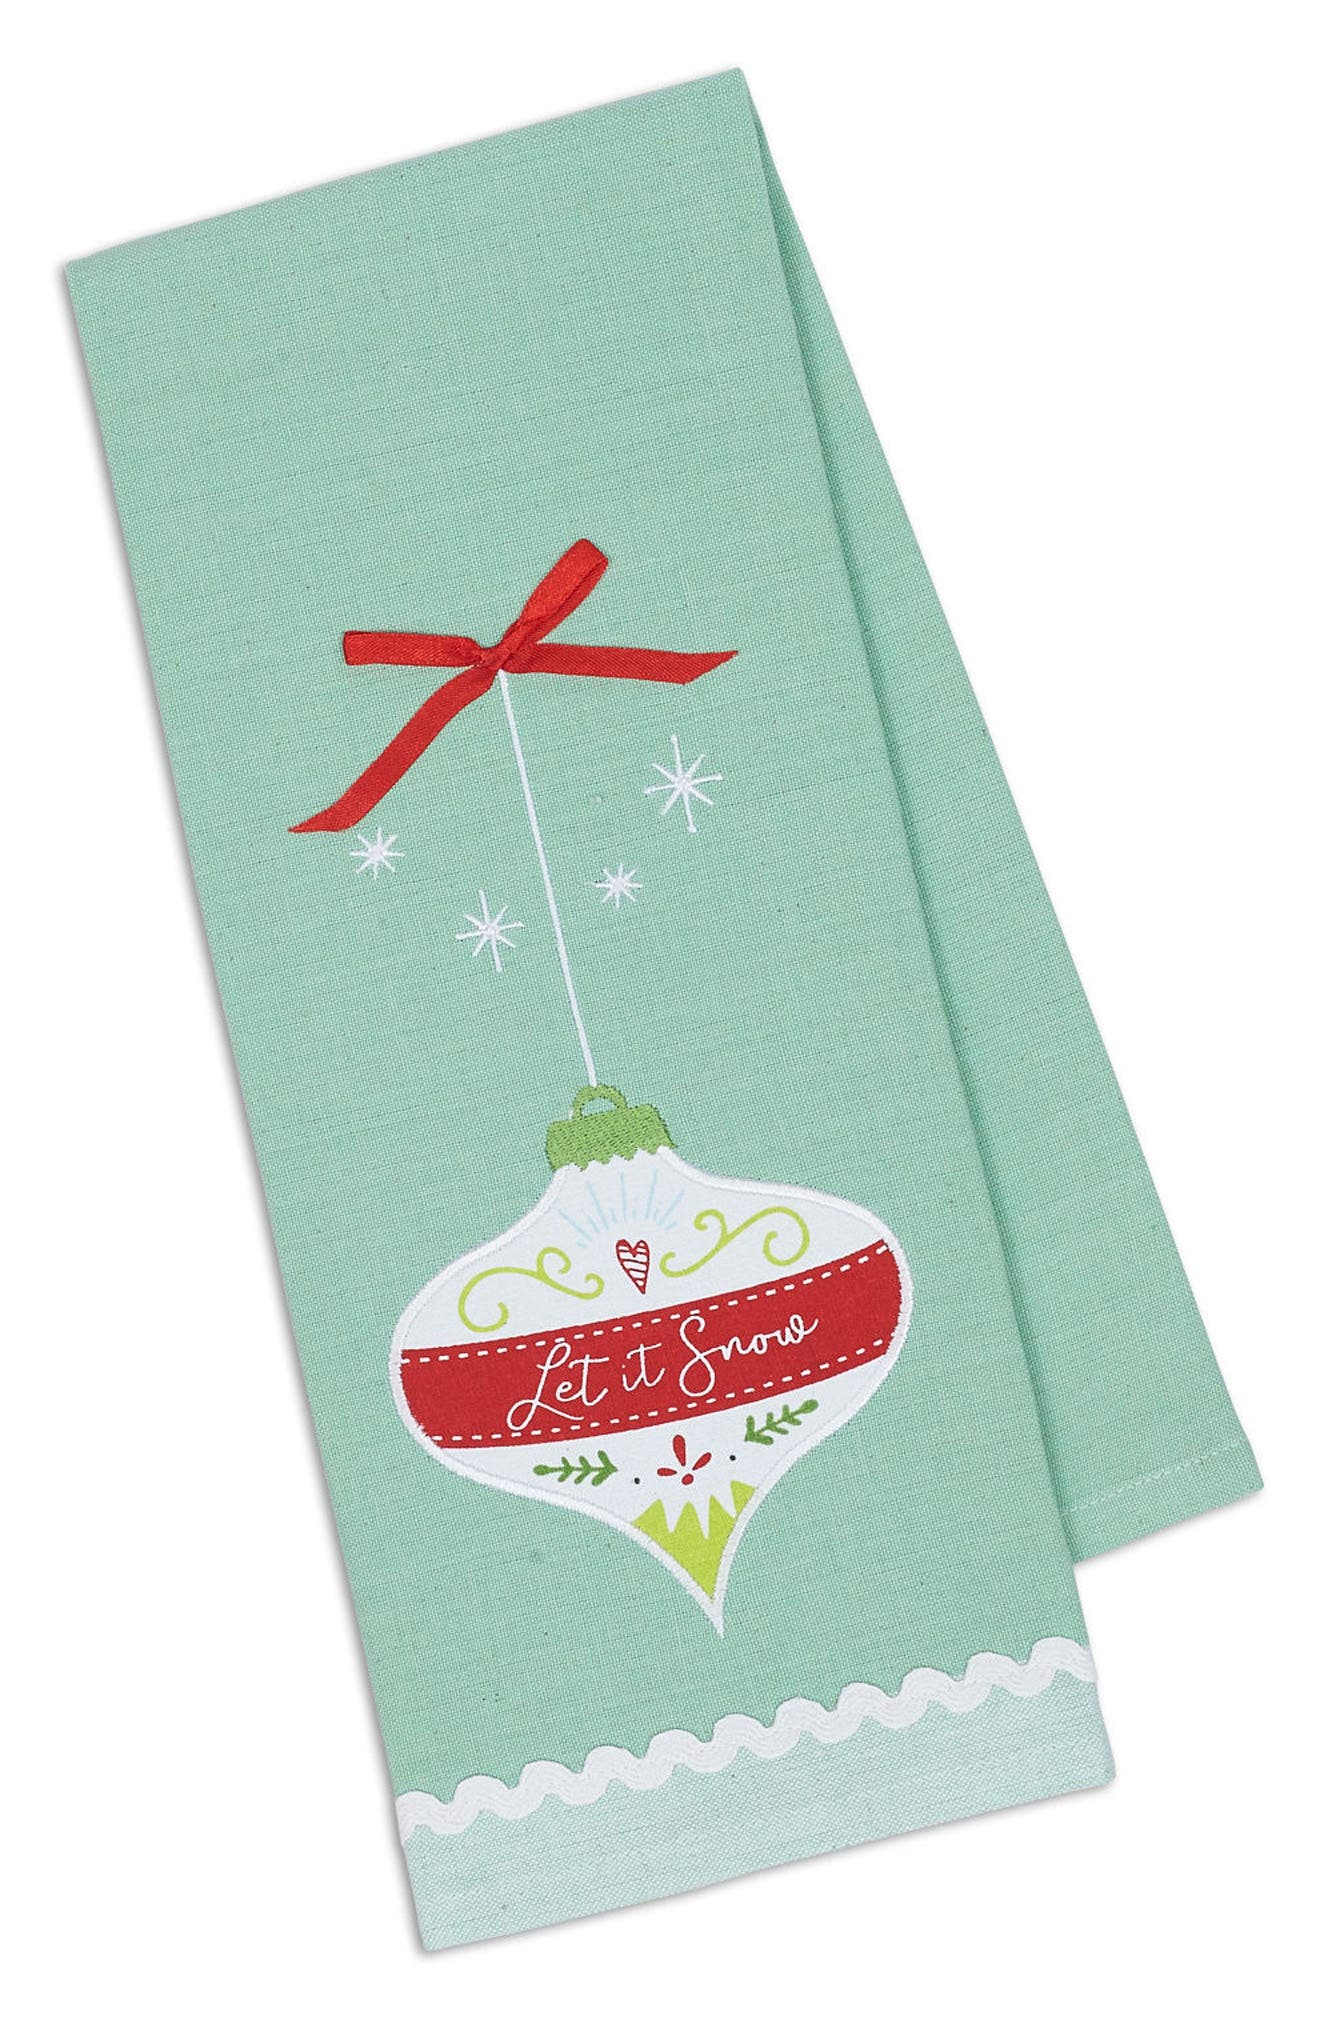 Let It Snow Embroidered Dish Towel,                             Main thumbnail 1, color,                             300